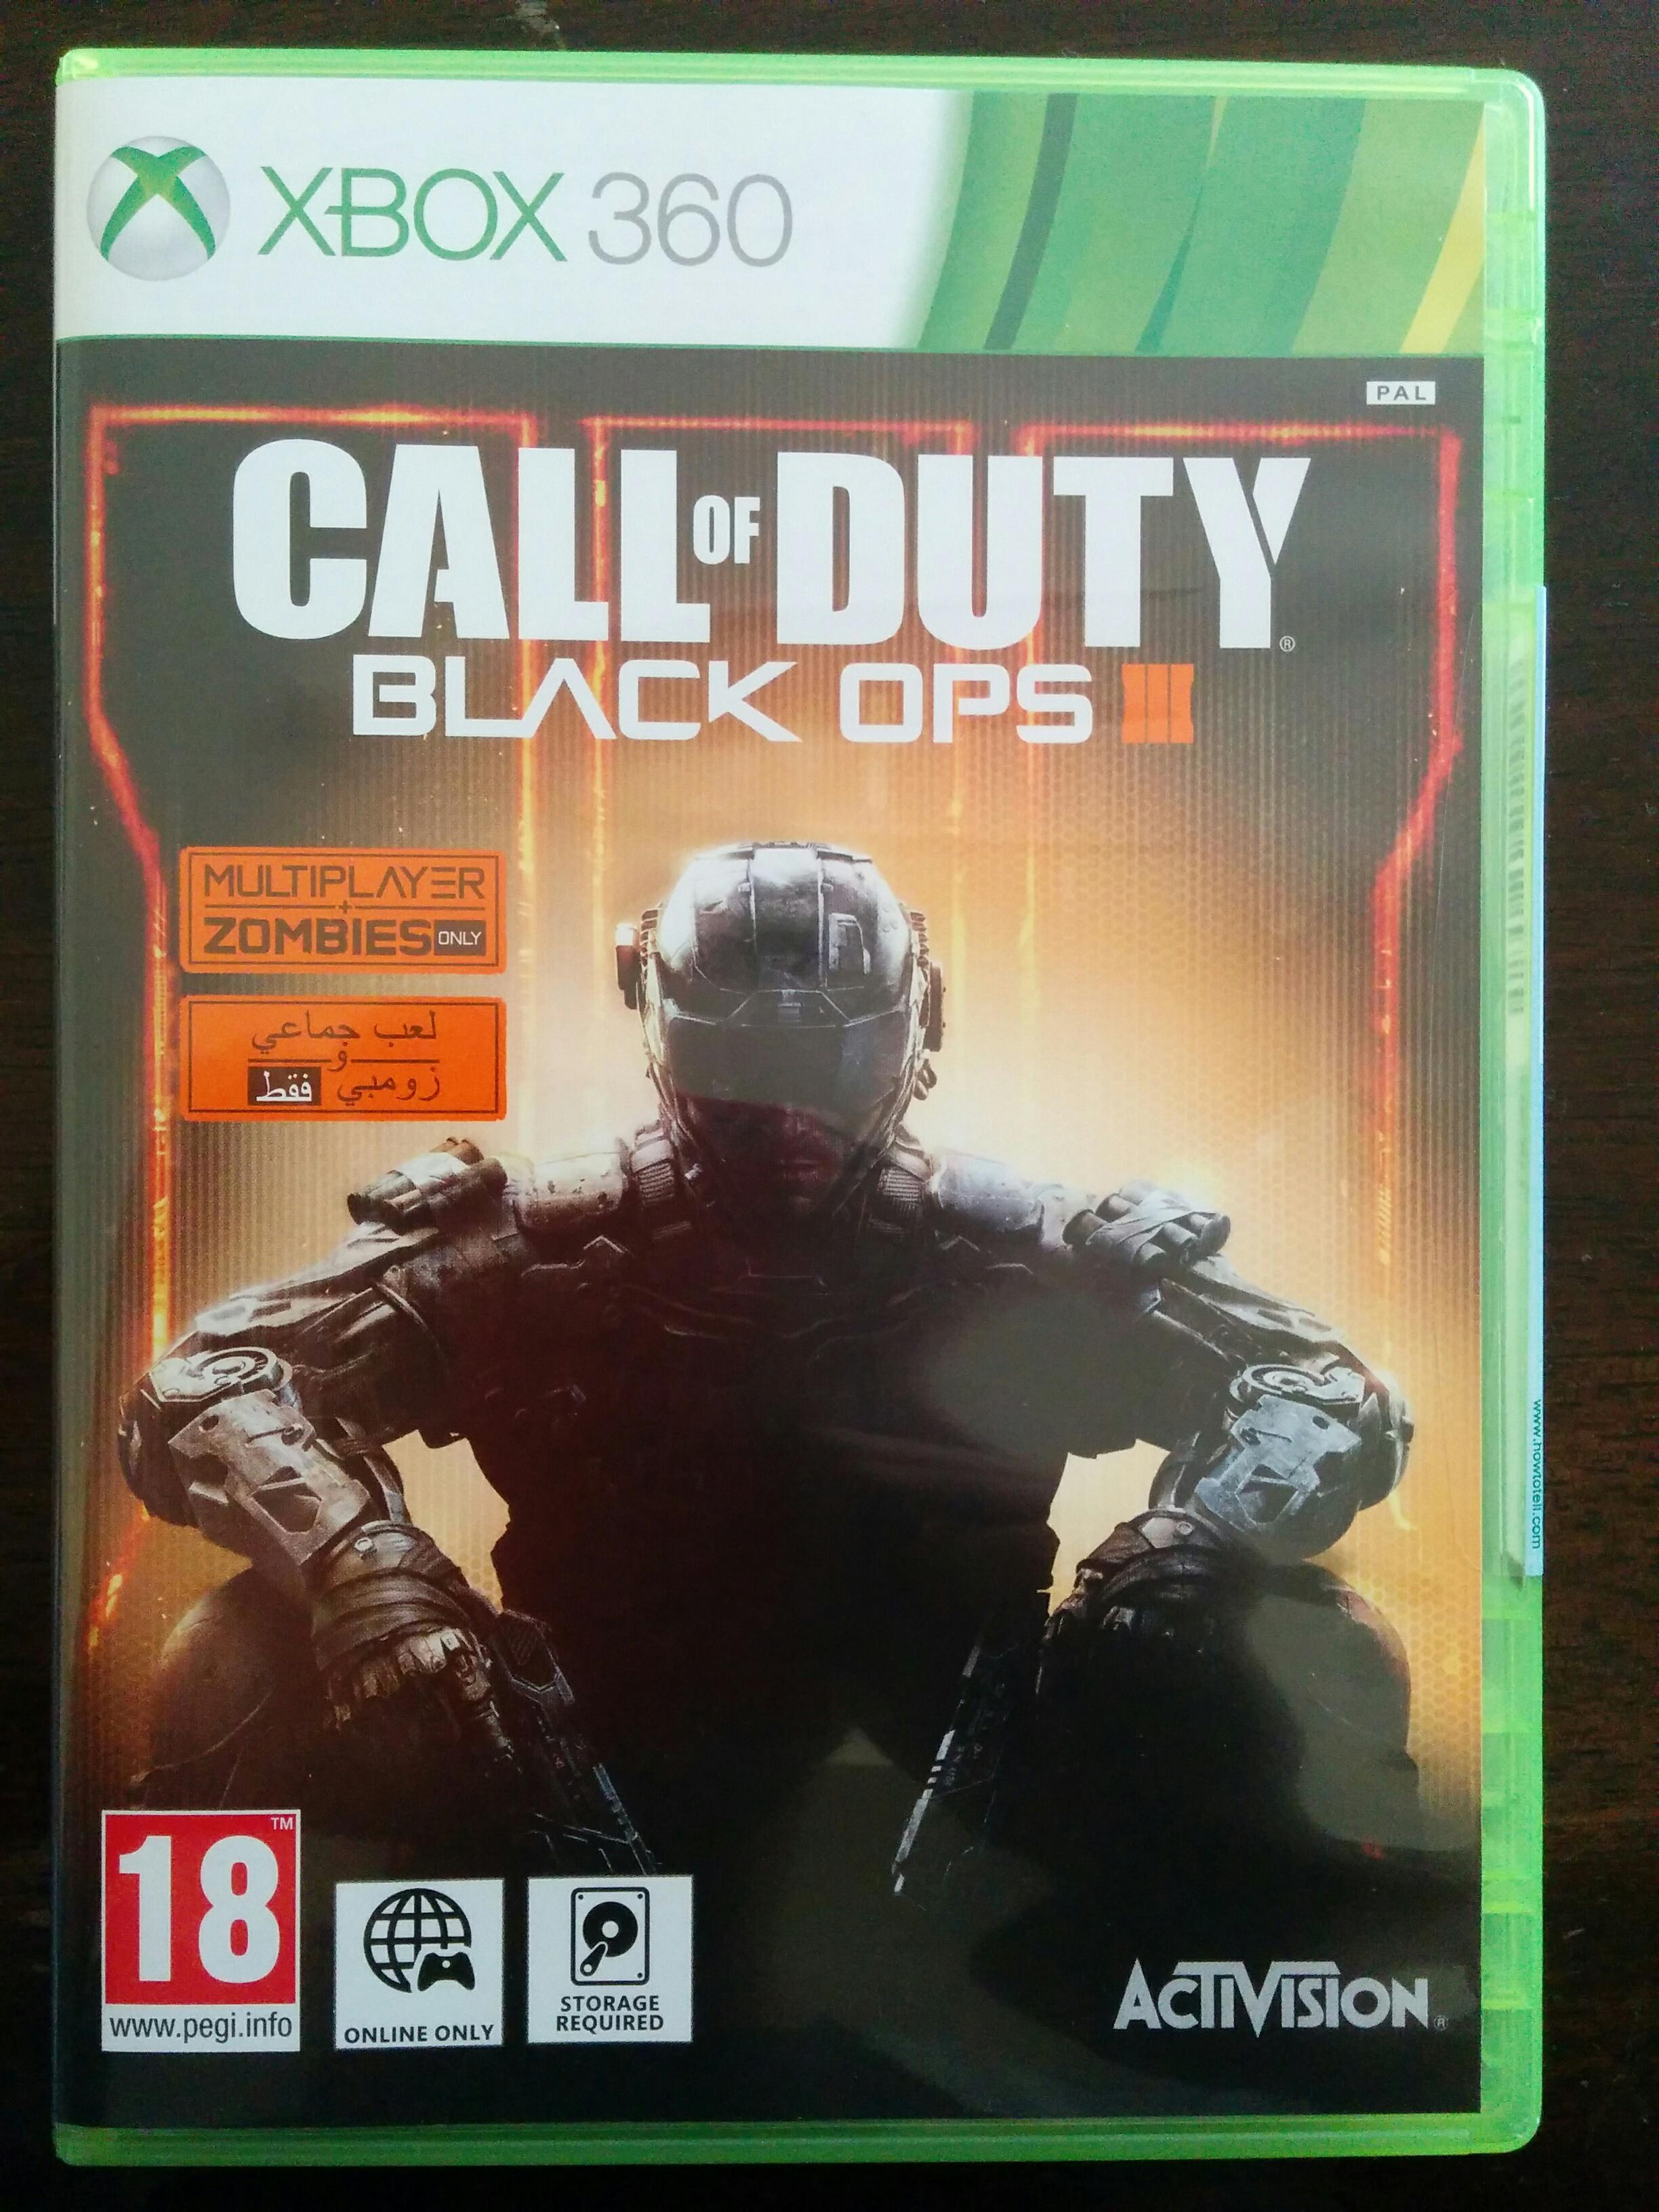 Call of Duty Black ops 3 (Xbox 360 PAL) and ingame COD black